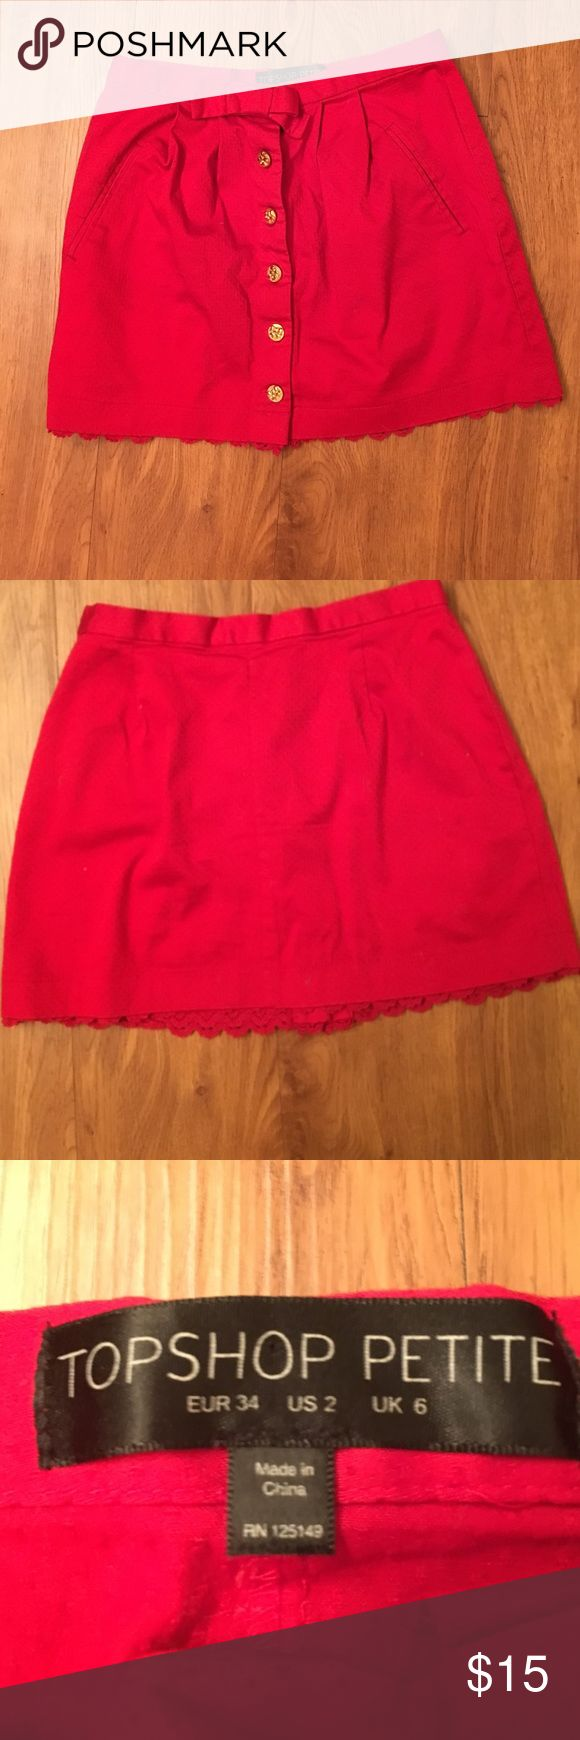 Topshop petite skirt Topshop petite skirt; worn a few times but still in good condition with no stains or holes Topshop PETITE Skirts Mini